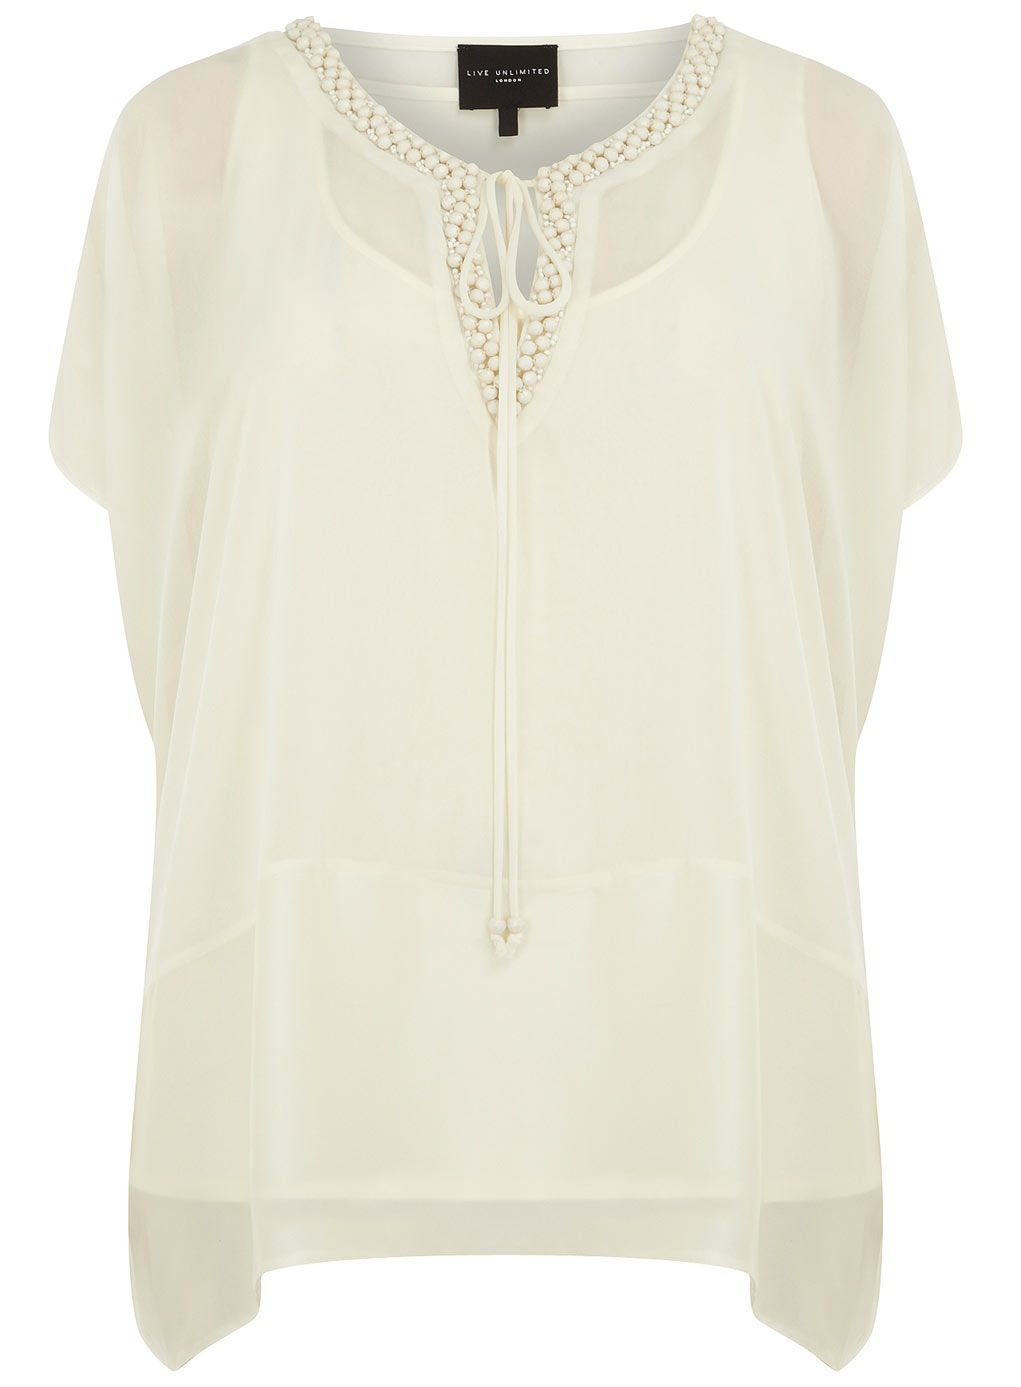 Live Unlimited Ivory Embellished Top > www.evans.co.uk.  Perfect for springtime occasions and summer weddings, we love the sheer look with a full-body cami underneath.